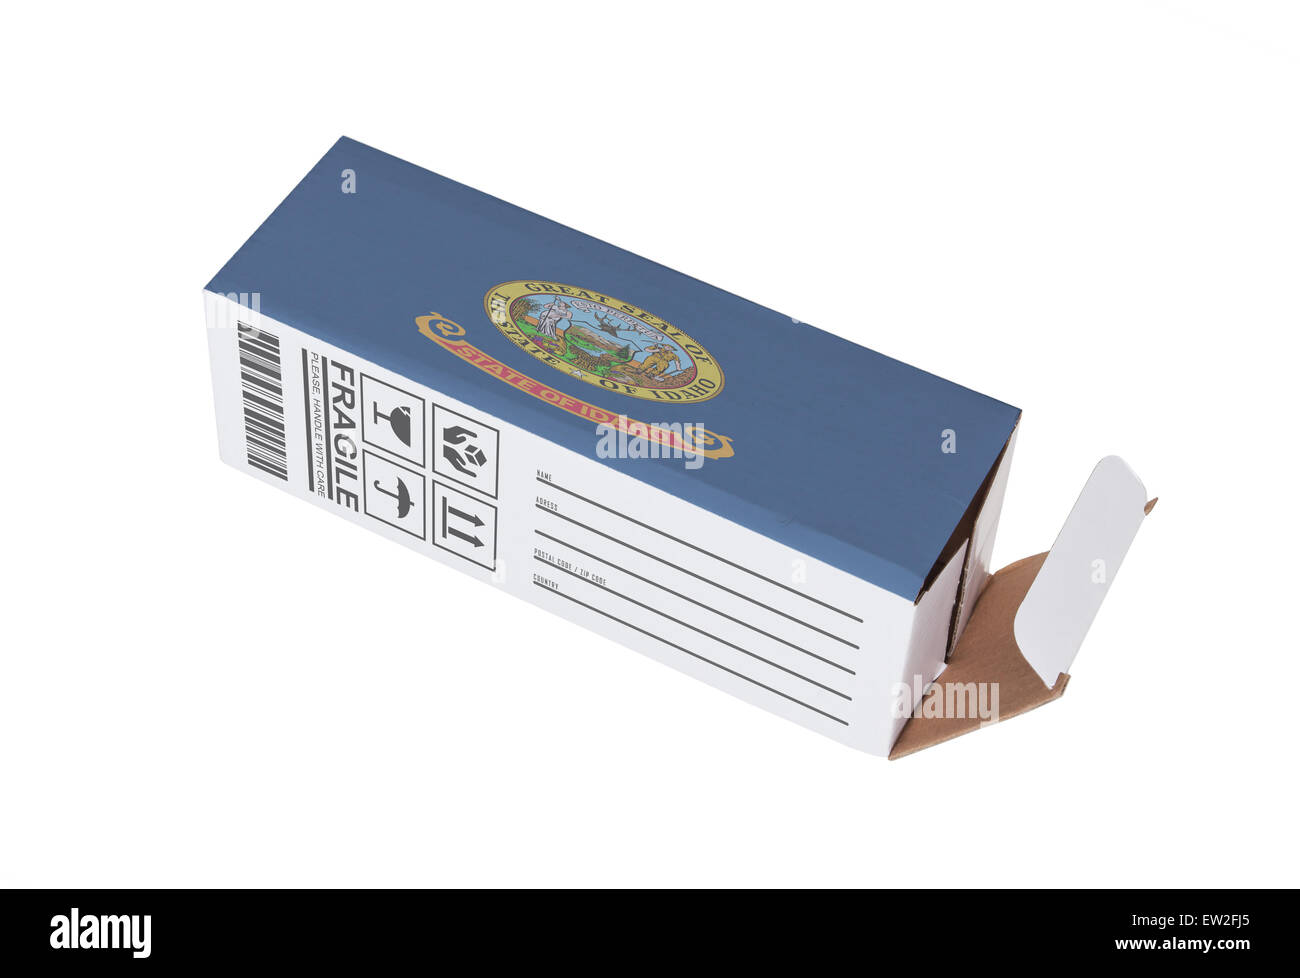 Concept of export, opened paper box - Product of Idaho - Stock Image